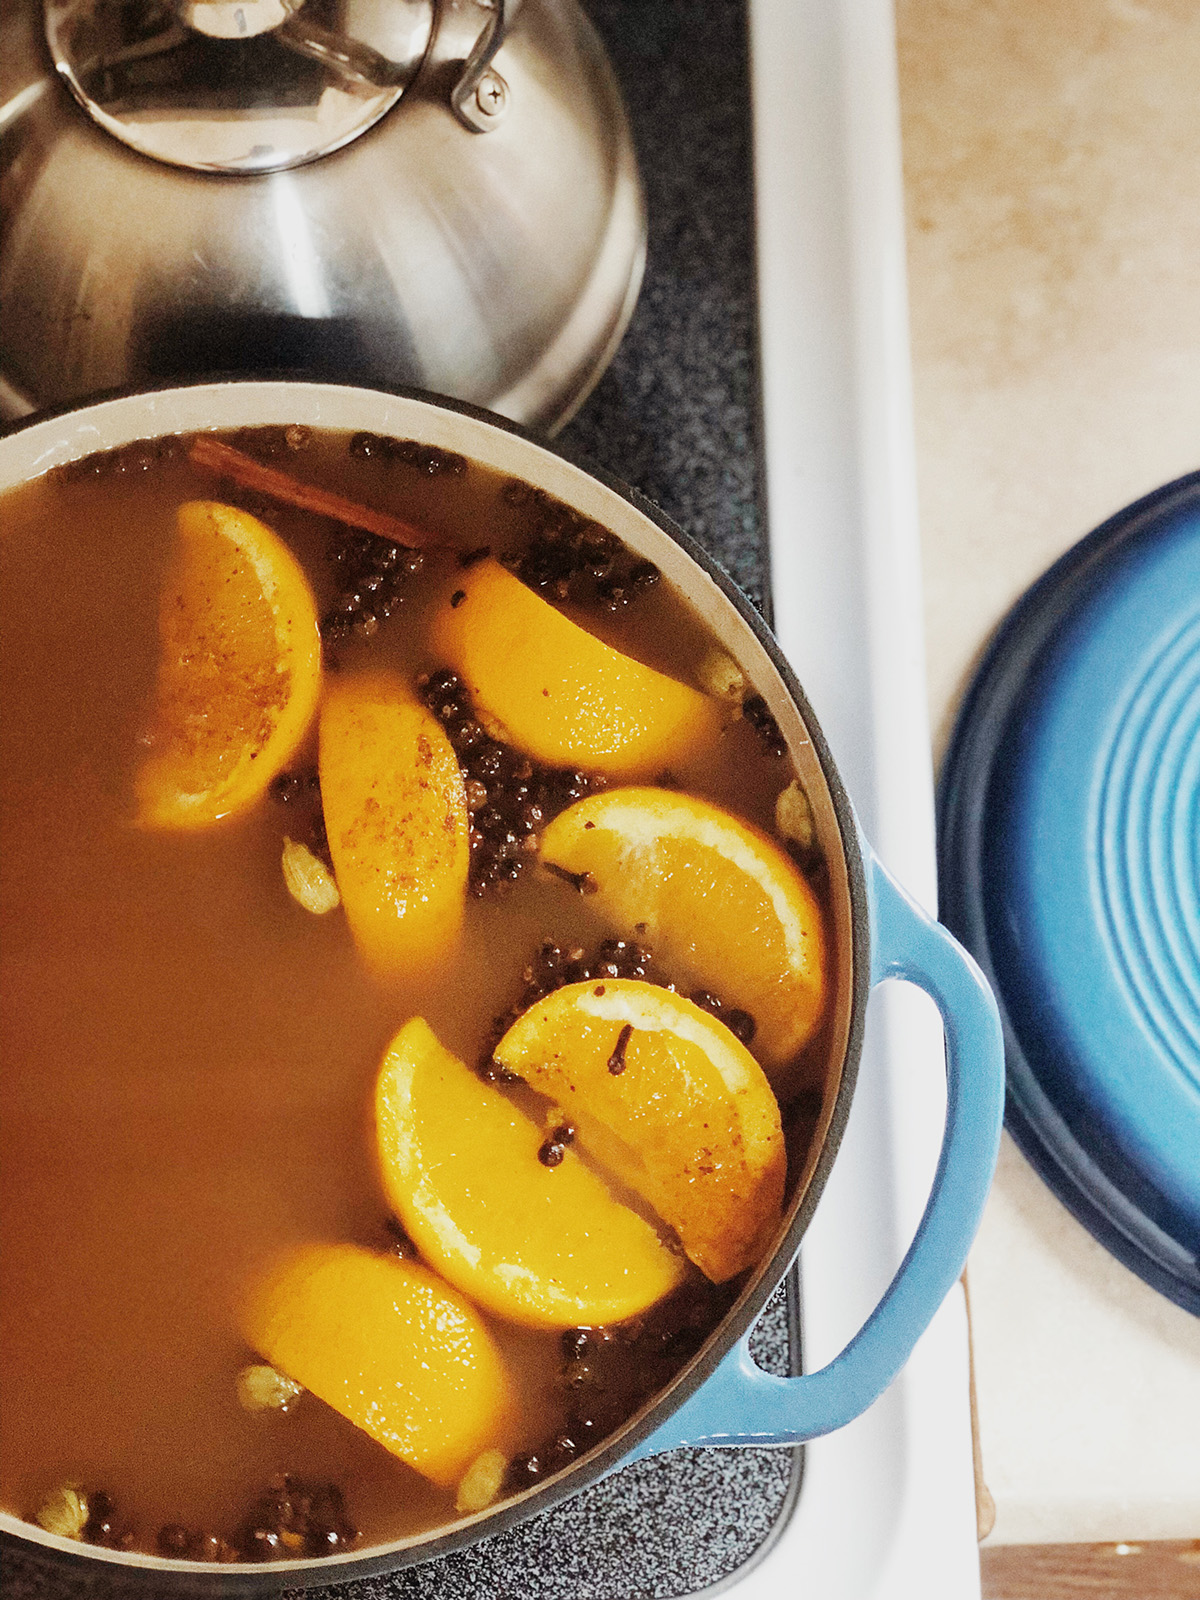 Cider Recipe with Hemp CBD Honey